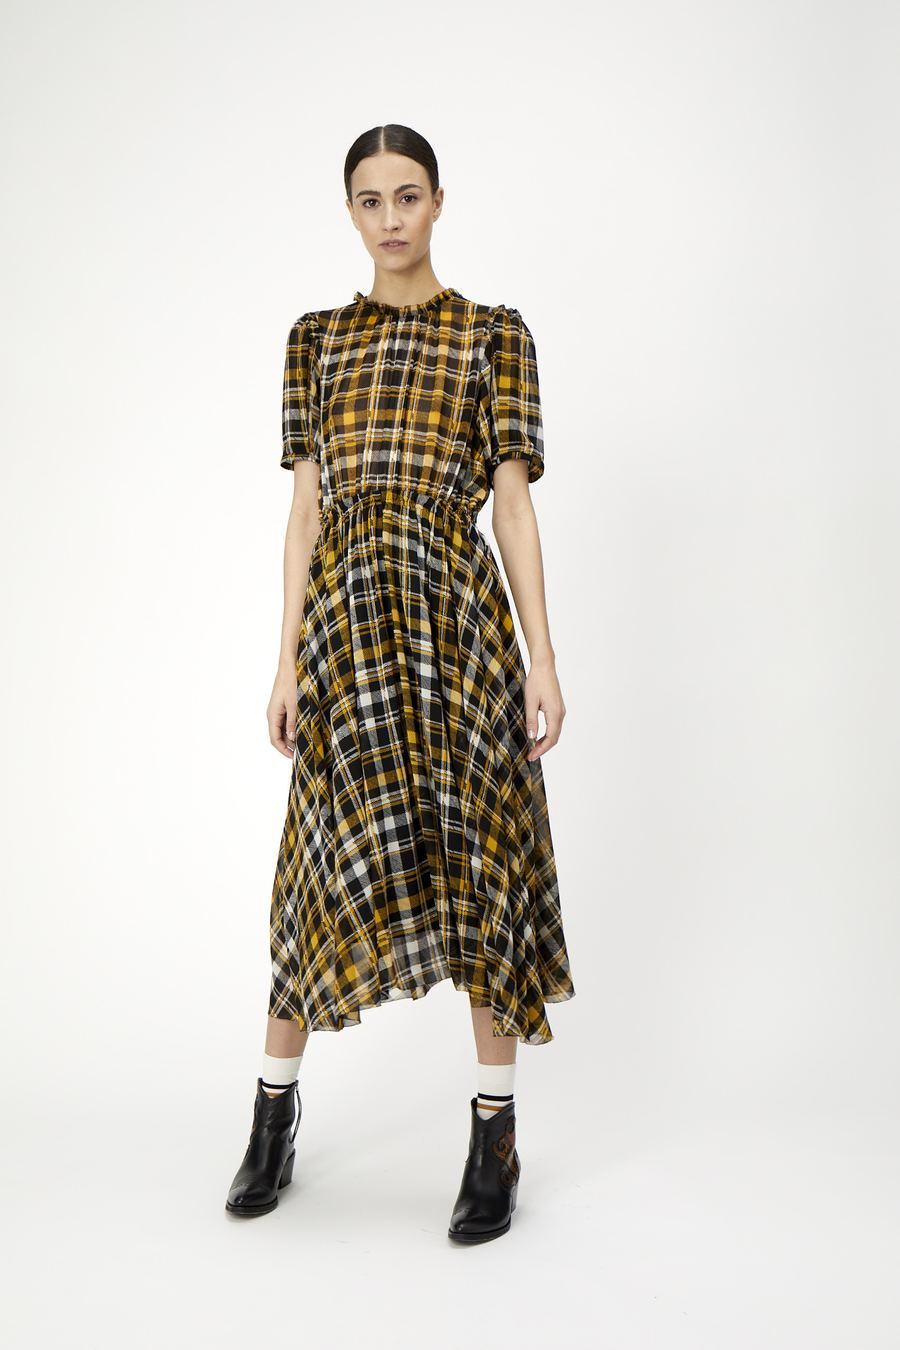 Brix Dress in Yellow/Black check